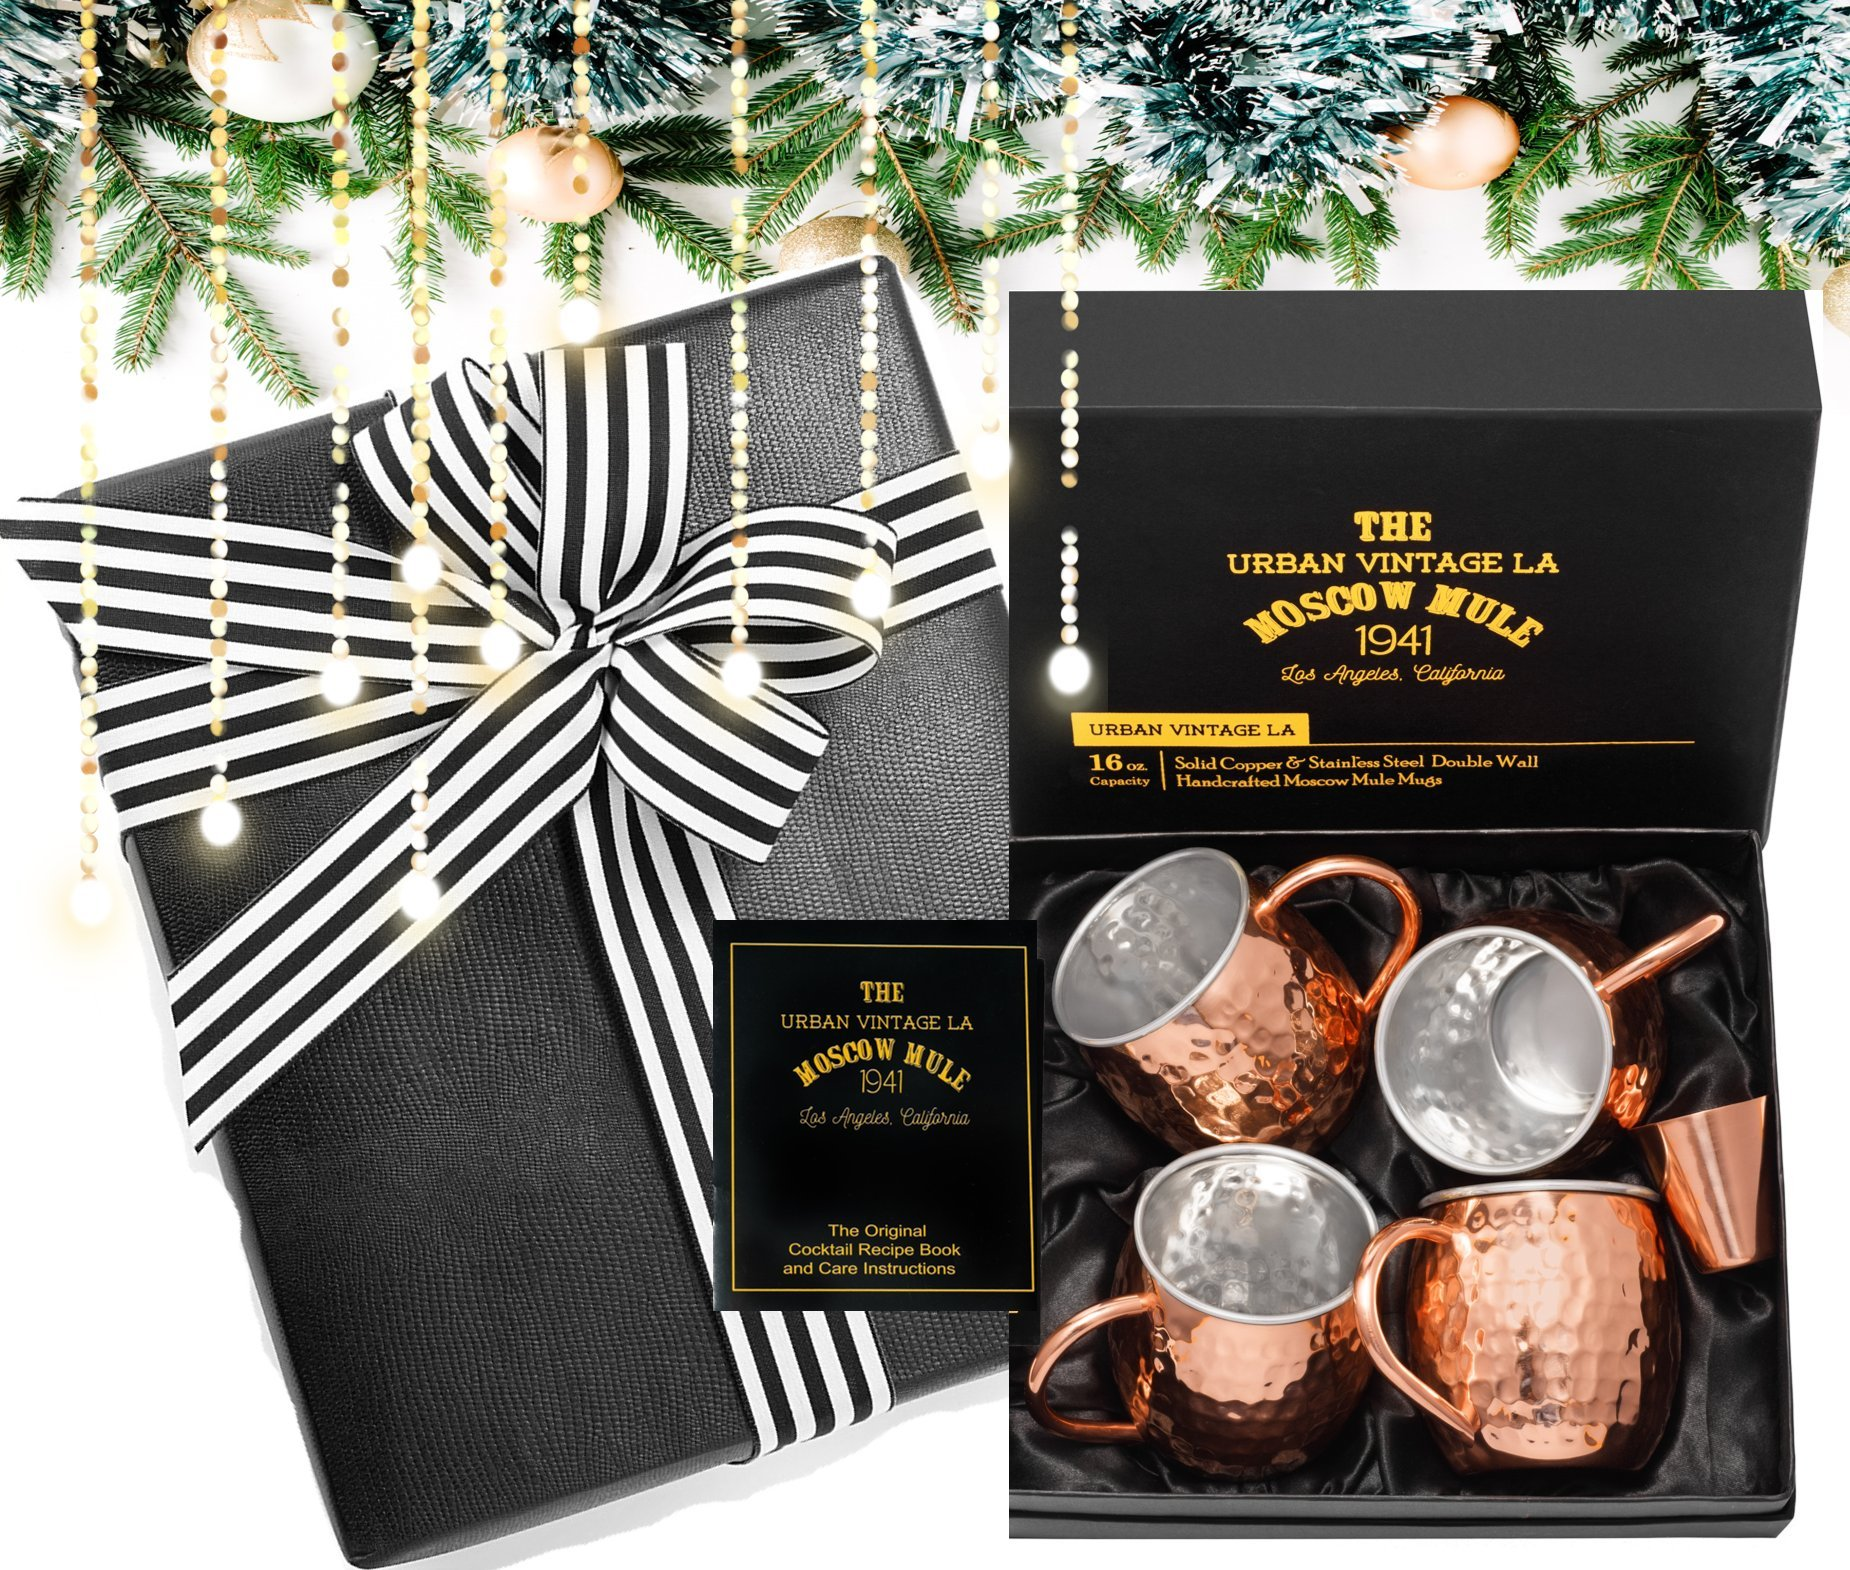 Gift Wrapped Set of 4 Moscow Mule Copper Mugs :: Moscow Mule Mugs with Stainless-Steel Lining Gift Set :: Set of 4 Moscow Mule Mugs :: Copper Mugs for Moscow Mules Gift Boxed :: Lined Copper Mugs